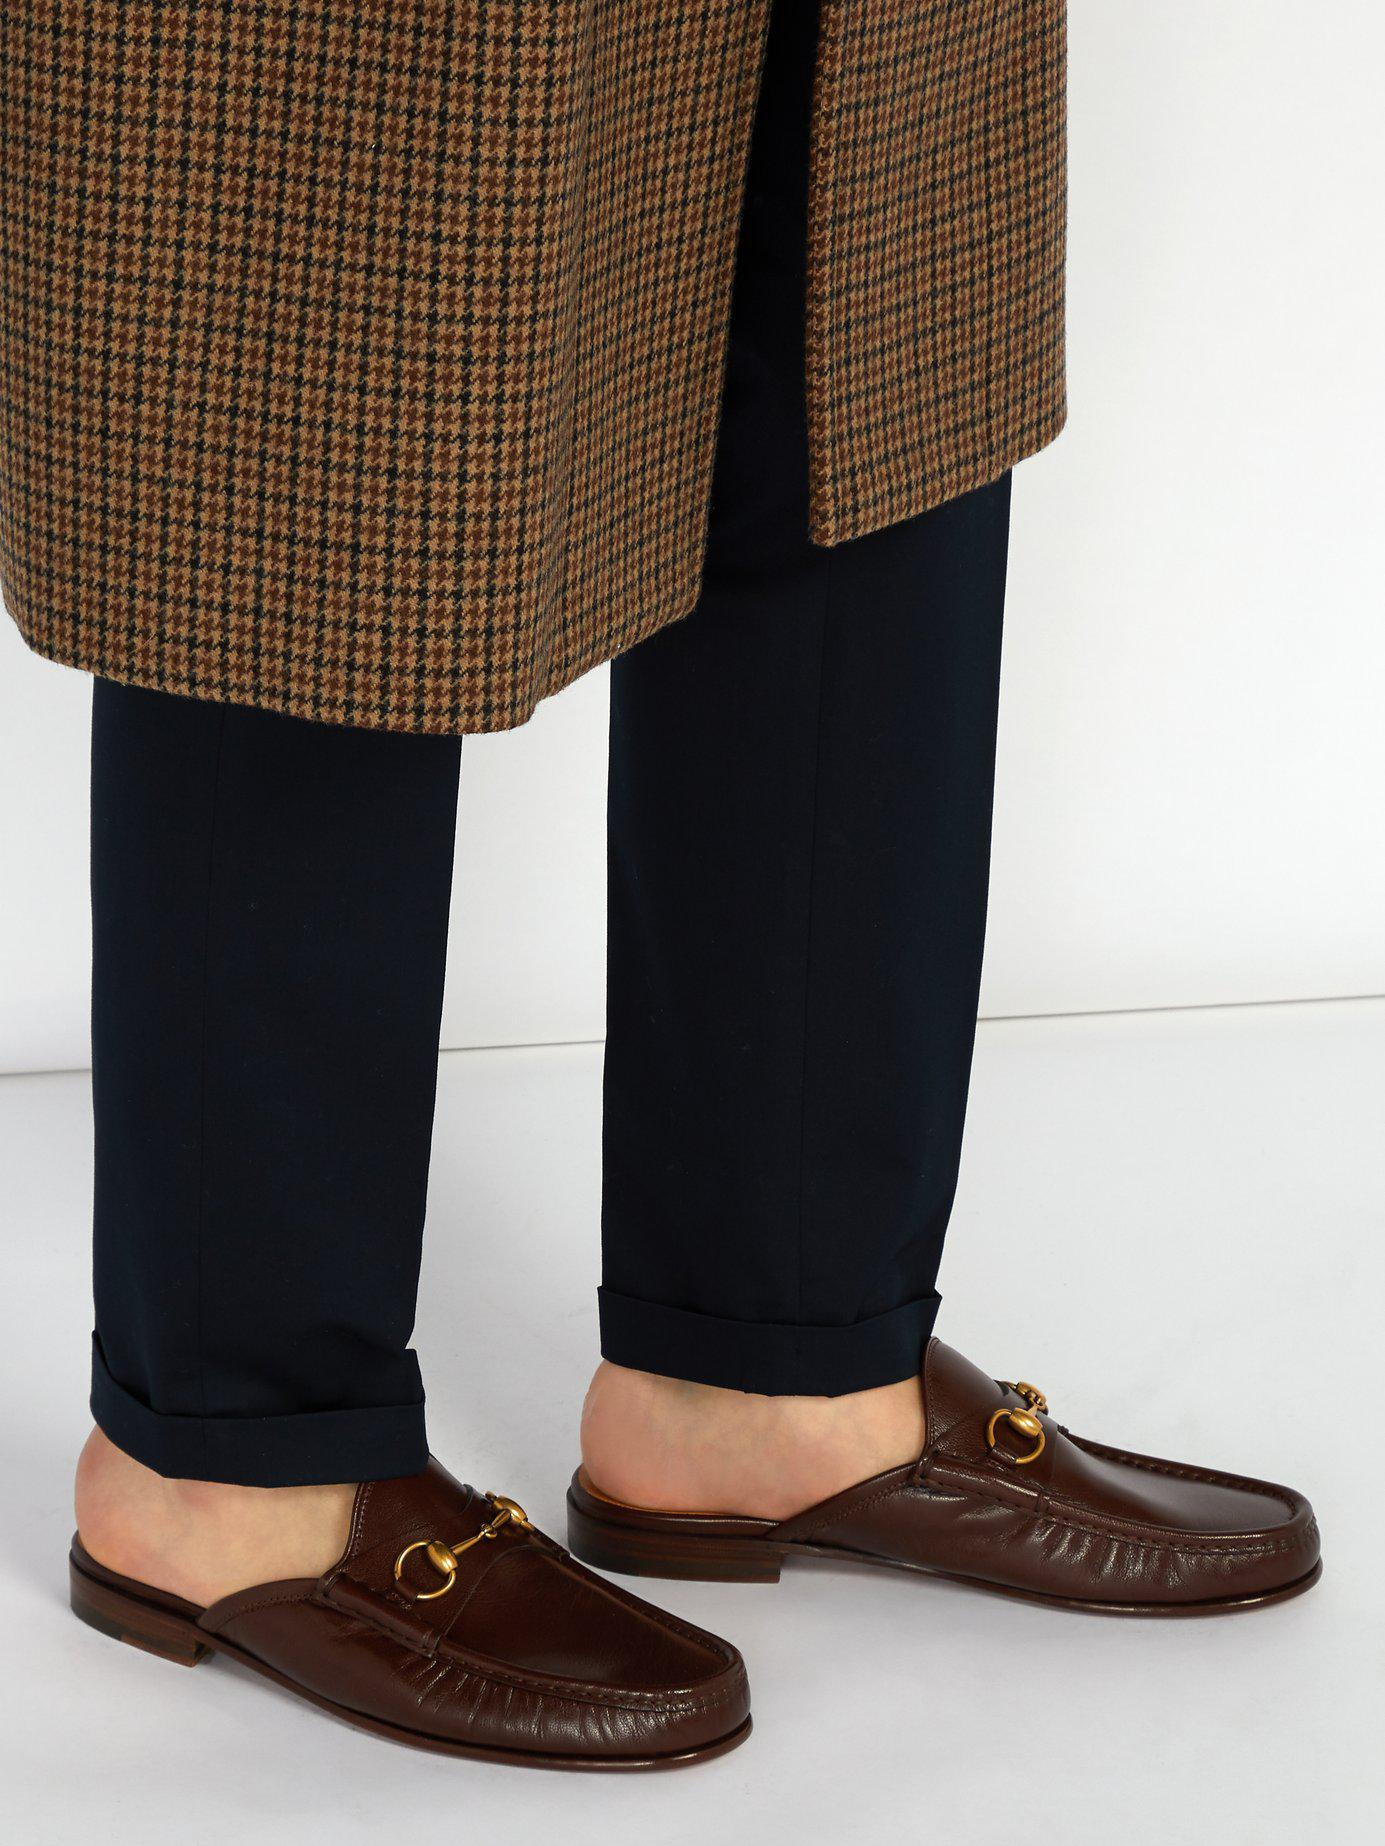 03afeaeda55 Lyst - Gucci Roos Leather Backless Loafers in Brown for Men